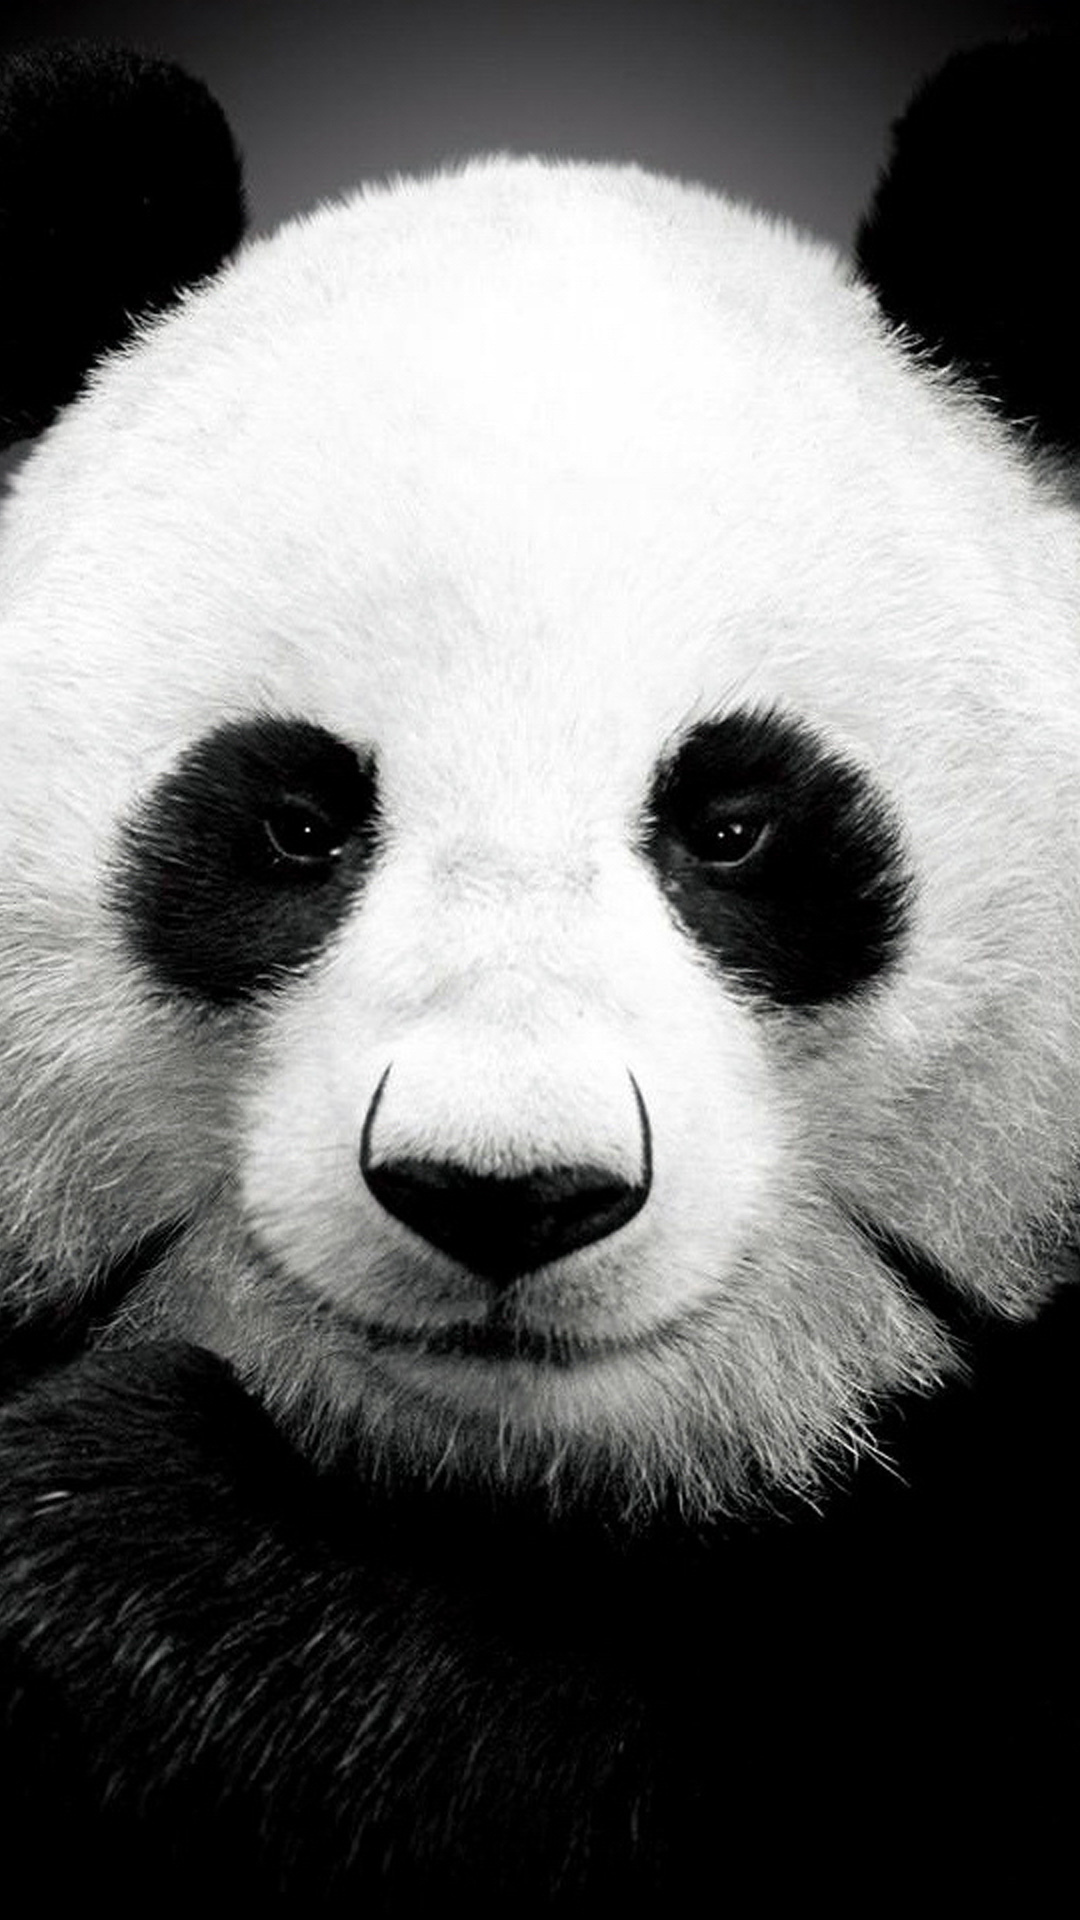 Panda Bear Cute Wallpaper Panda Bear Best Htc One Wallpapers Free And Easy To